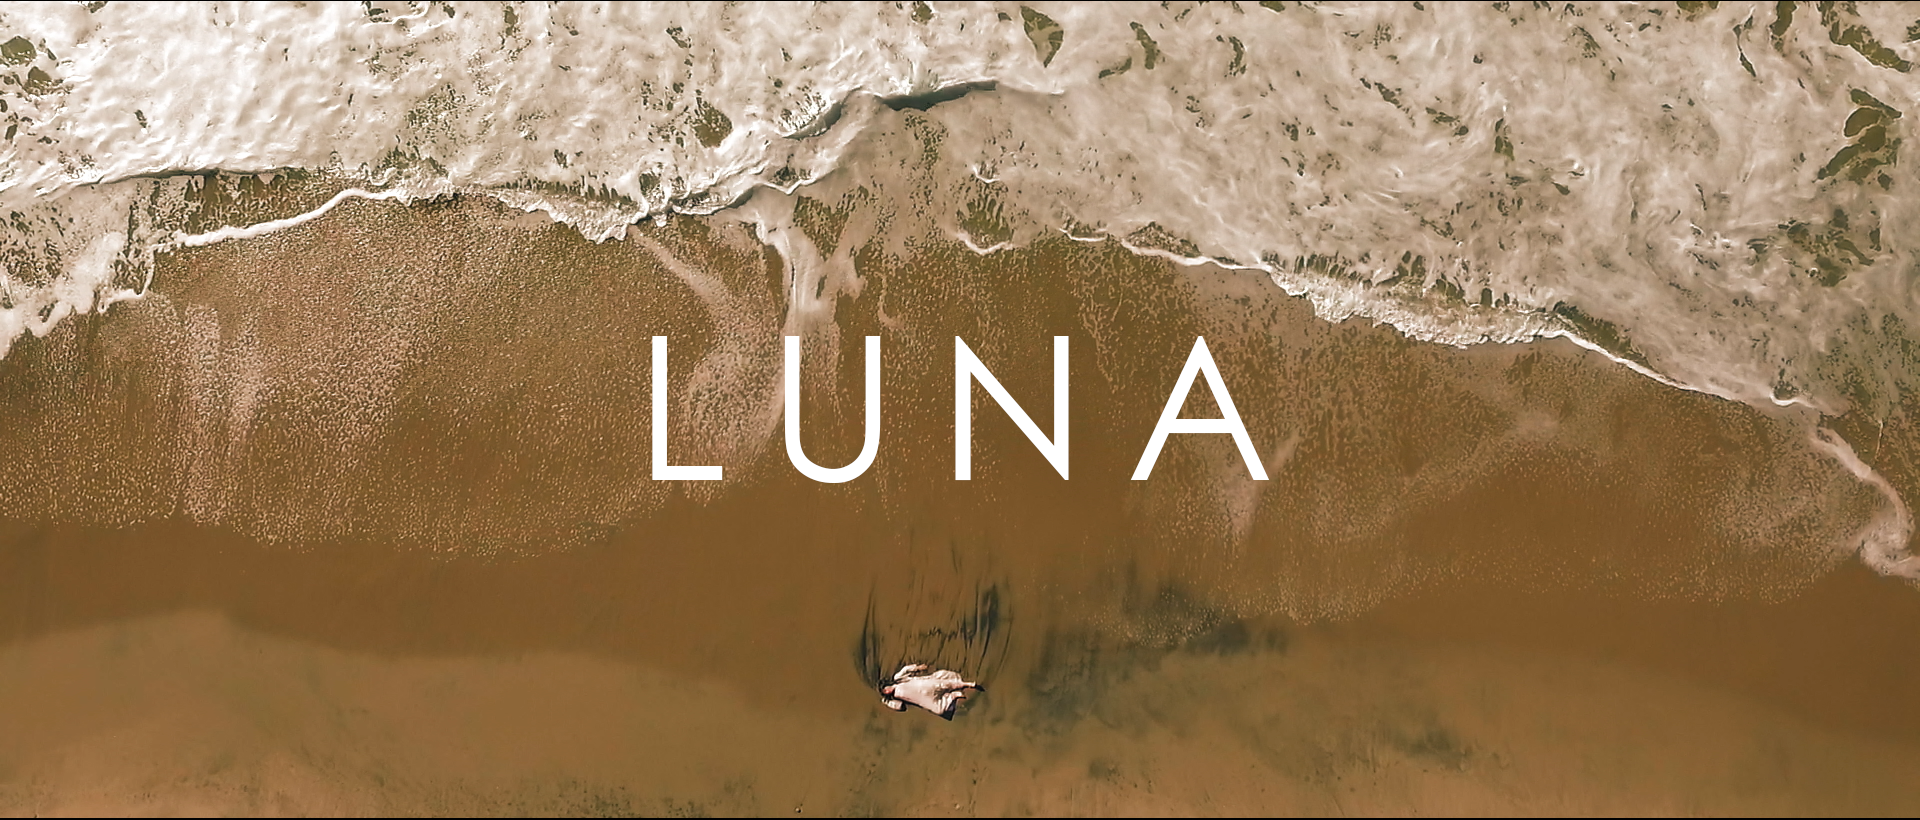 LUNA - CLICK TO WATCH